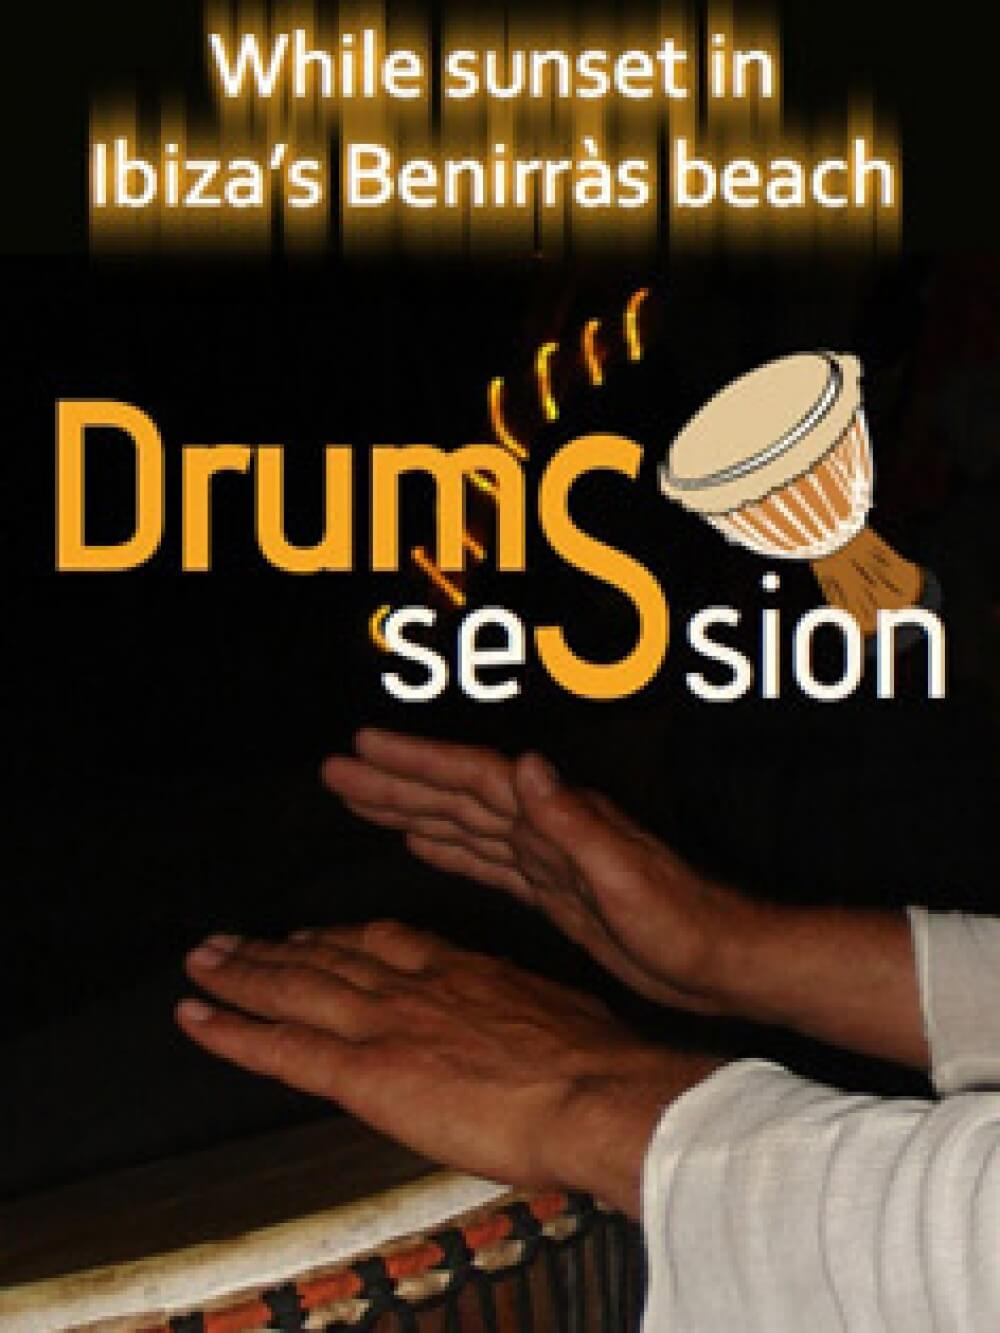 ibiza_drums_session_vertical_web